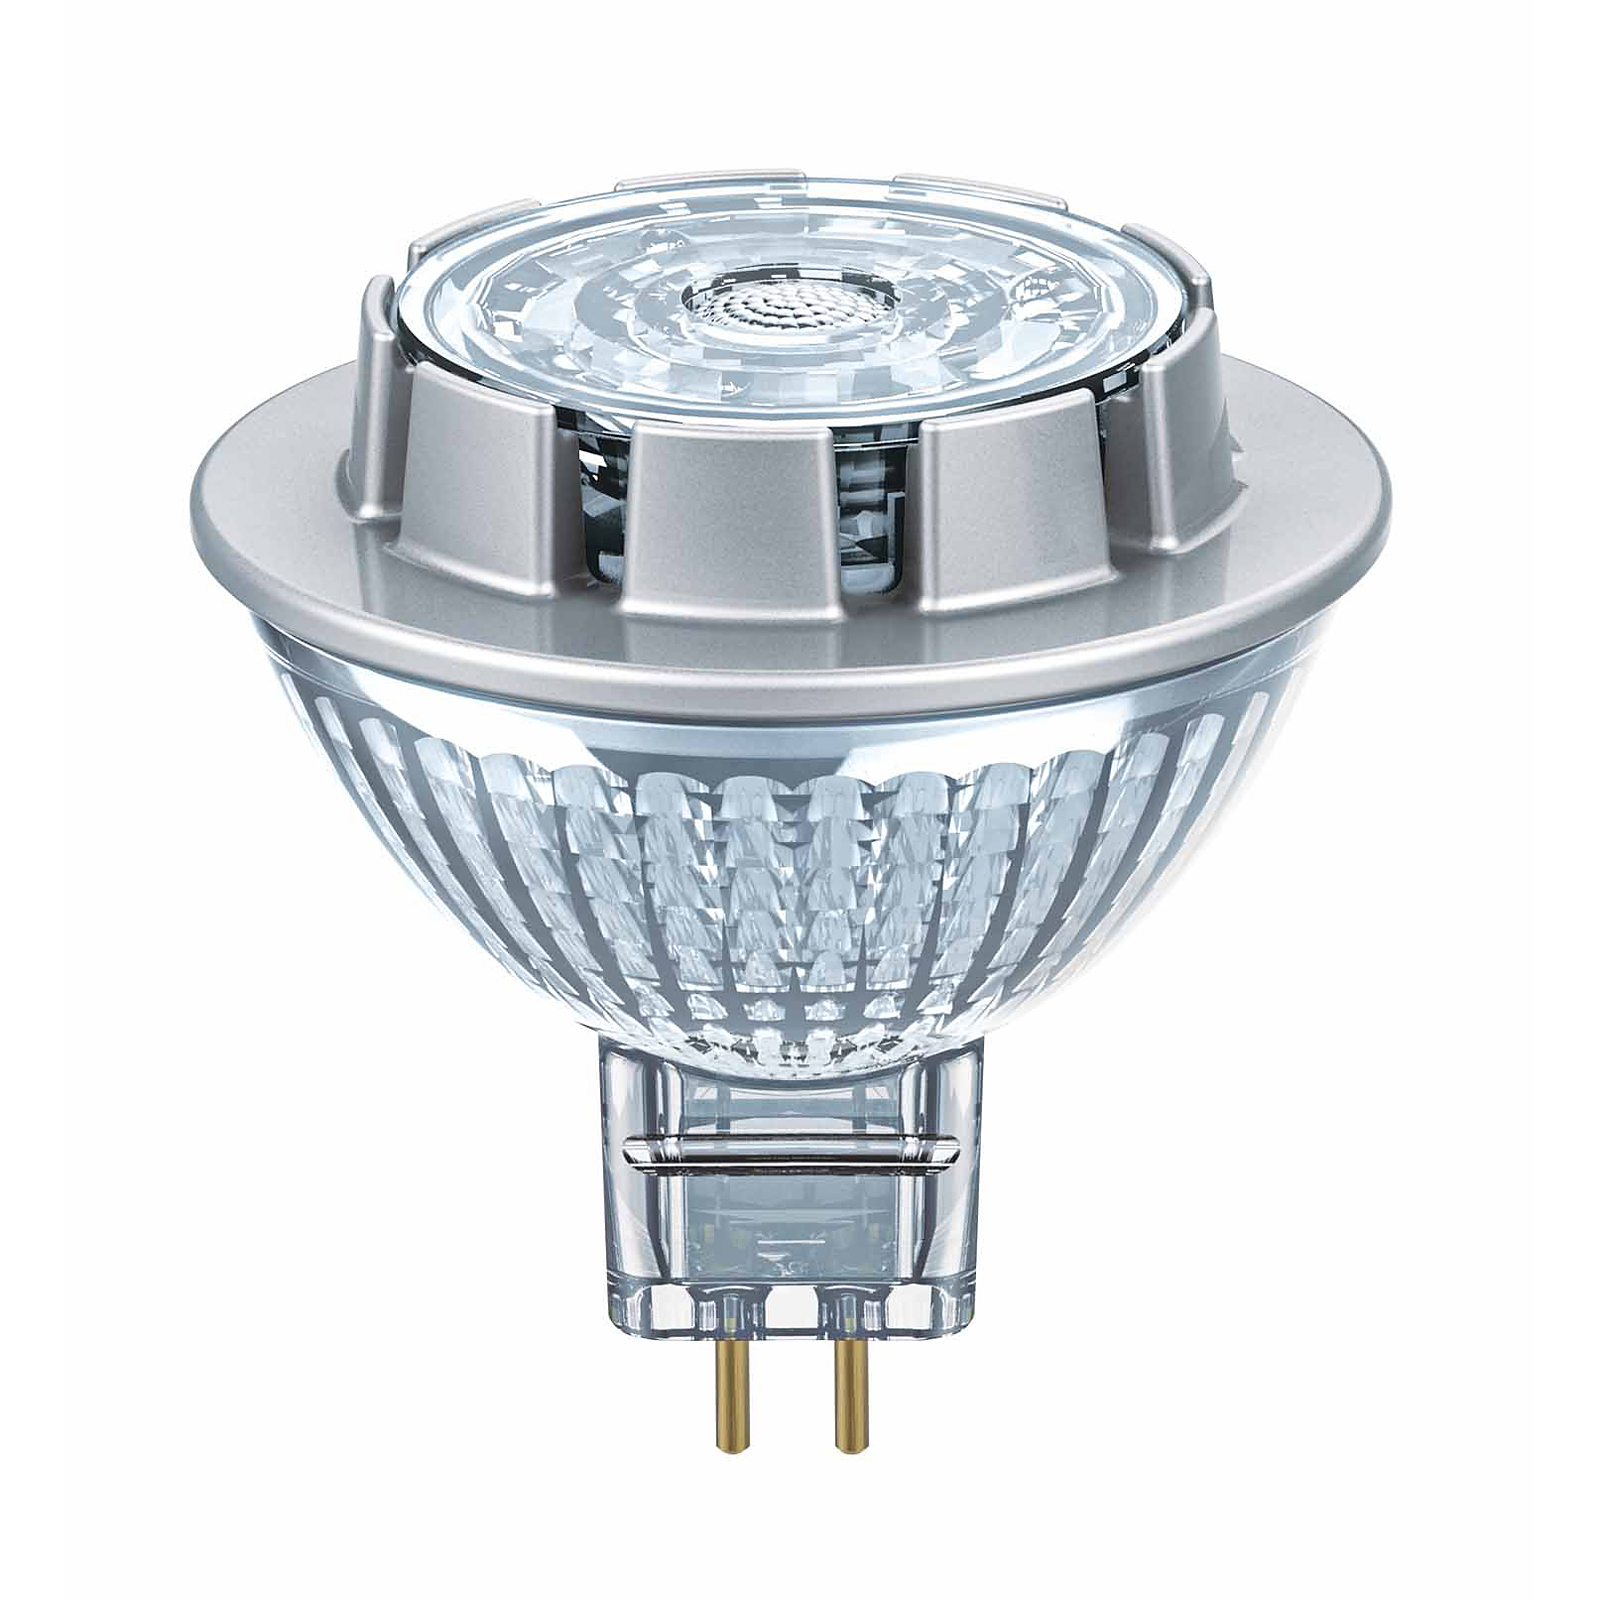 10996-OSRAM-LED-SUPERSTAR-MR16-GU5-3-78-Watt-wie-50-Watt-621-lm-warmweiss-dimmbar-1 Stilvolle Led Leuchten 12 Volt Dekorationen